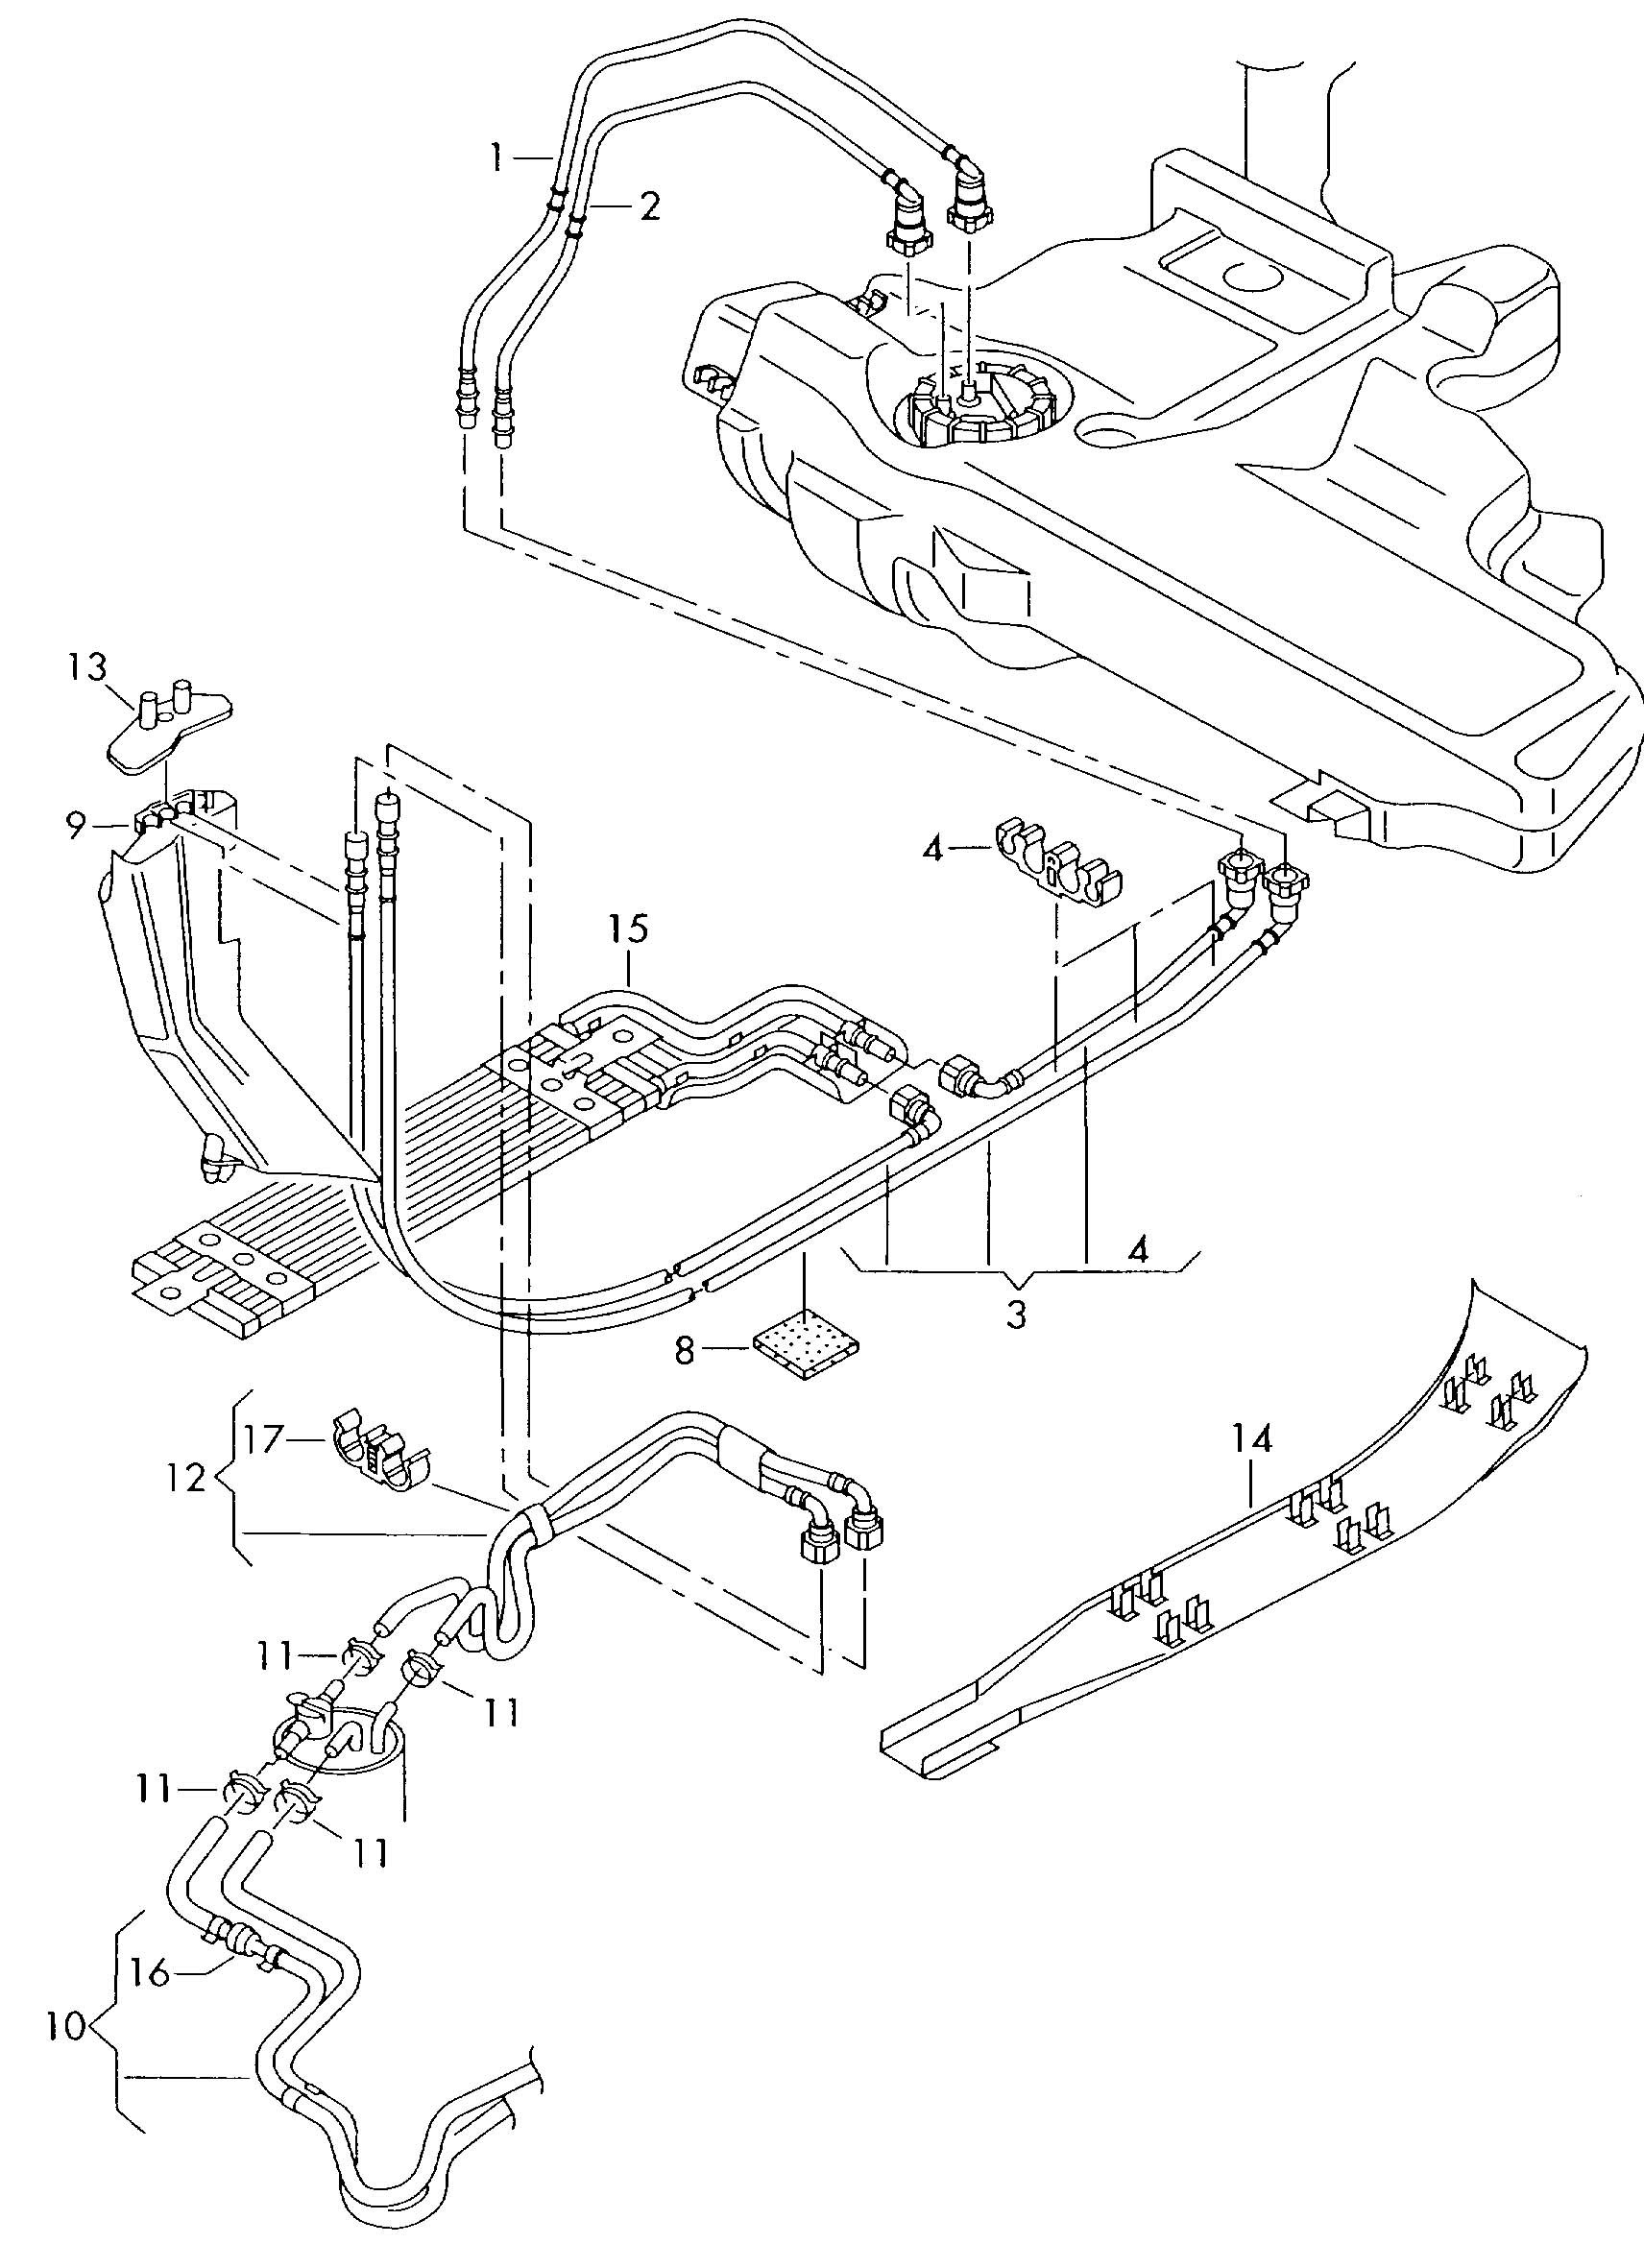 Vw Beetle Parts Diagram Pictures To Pin